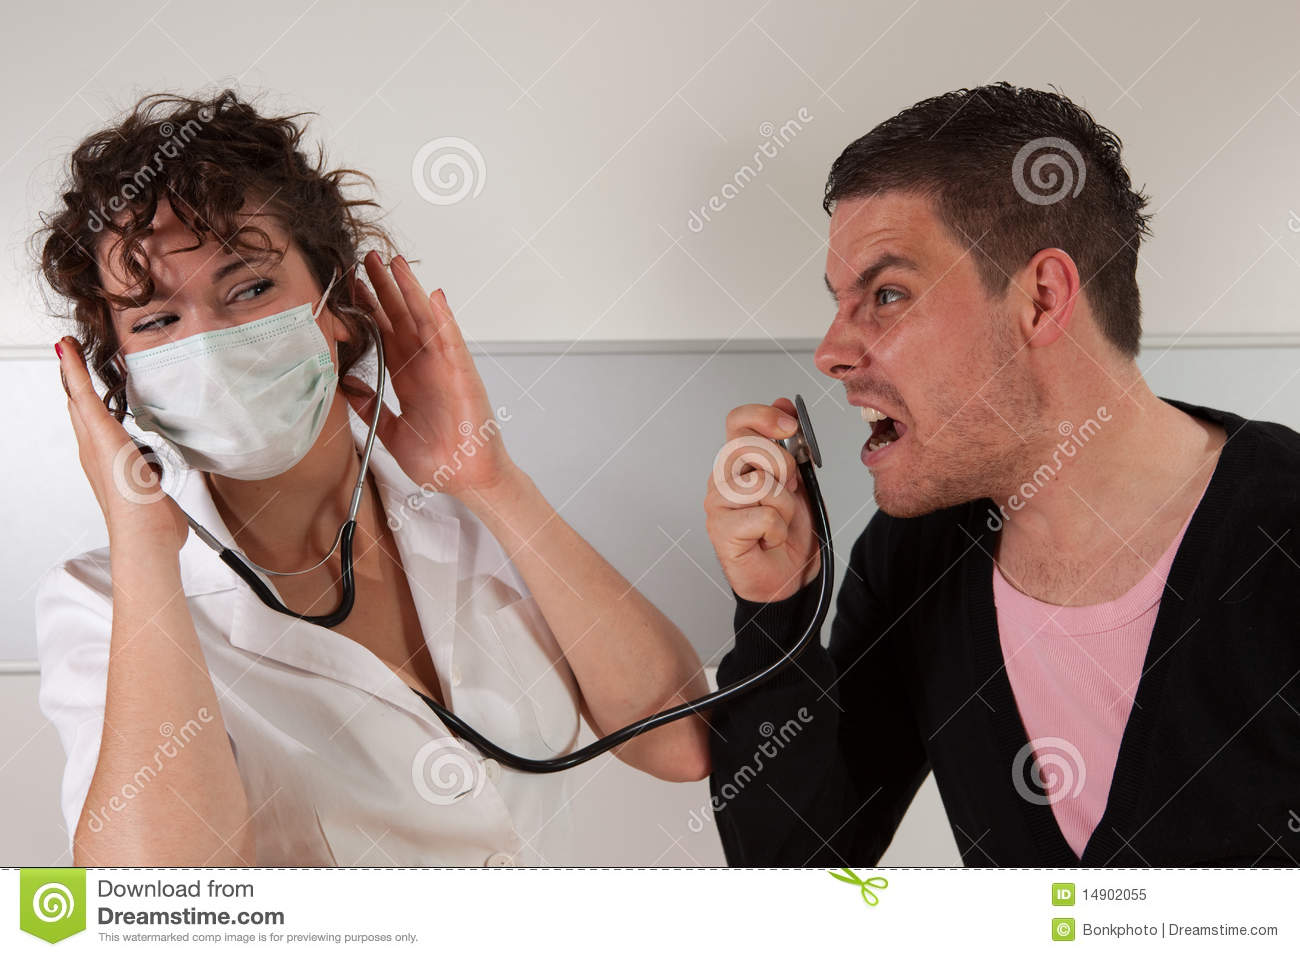 Angry Patient Royalty Free Stock Photo - Image: 14902055